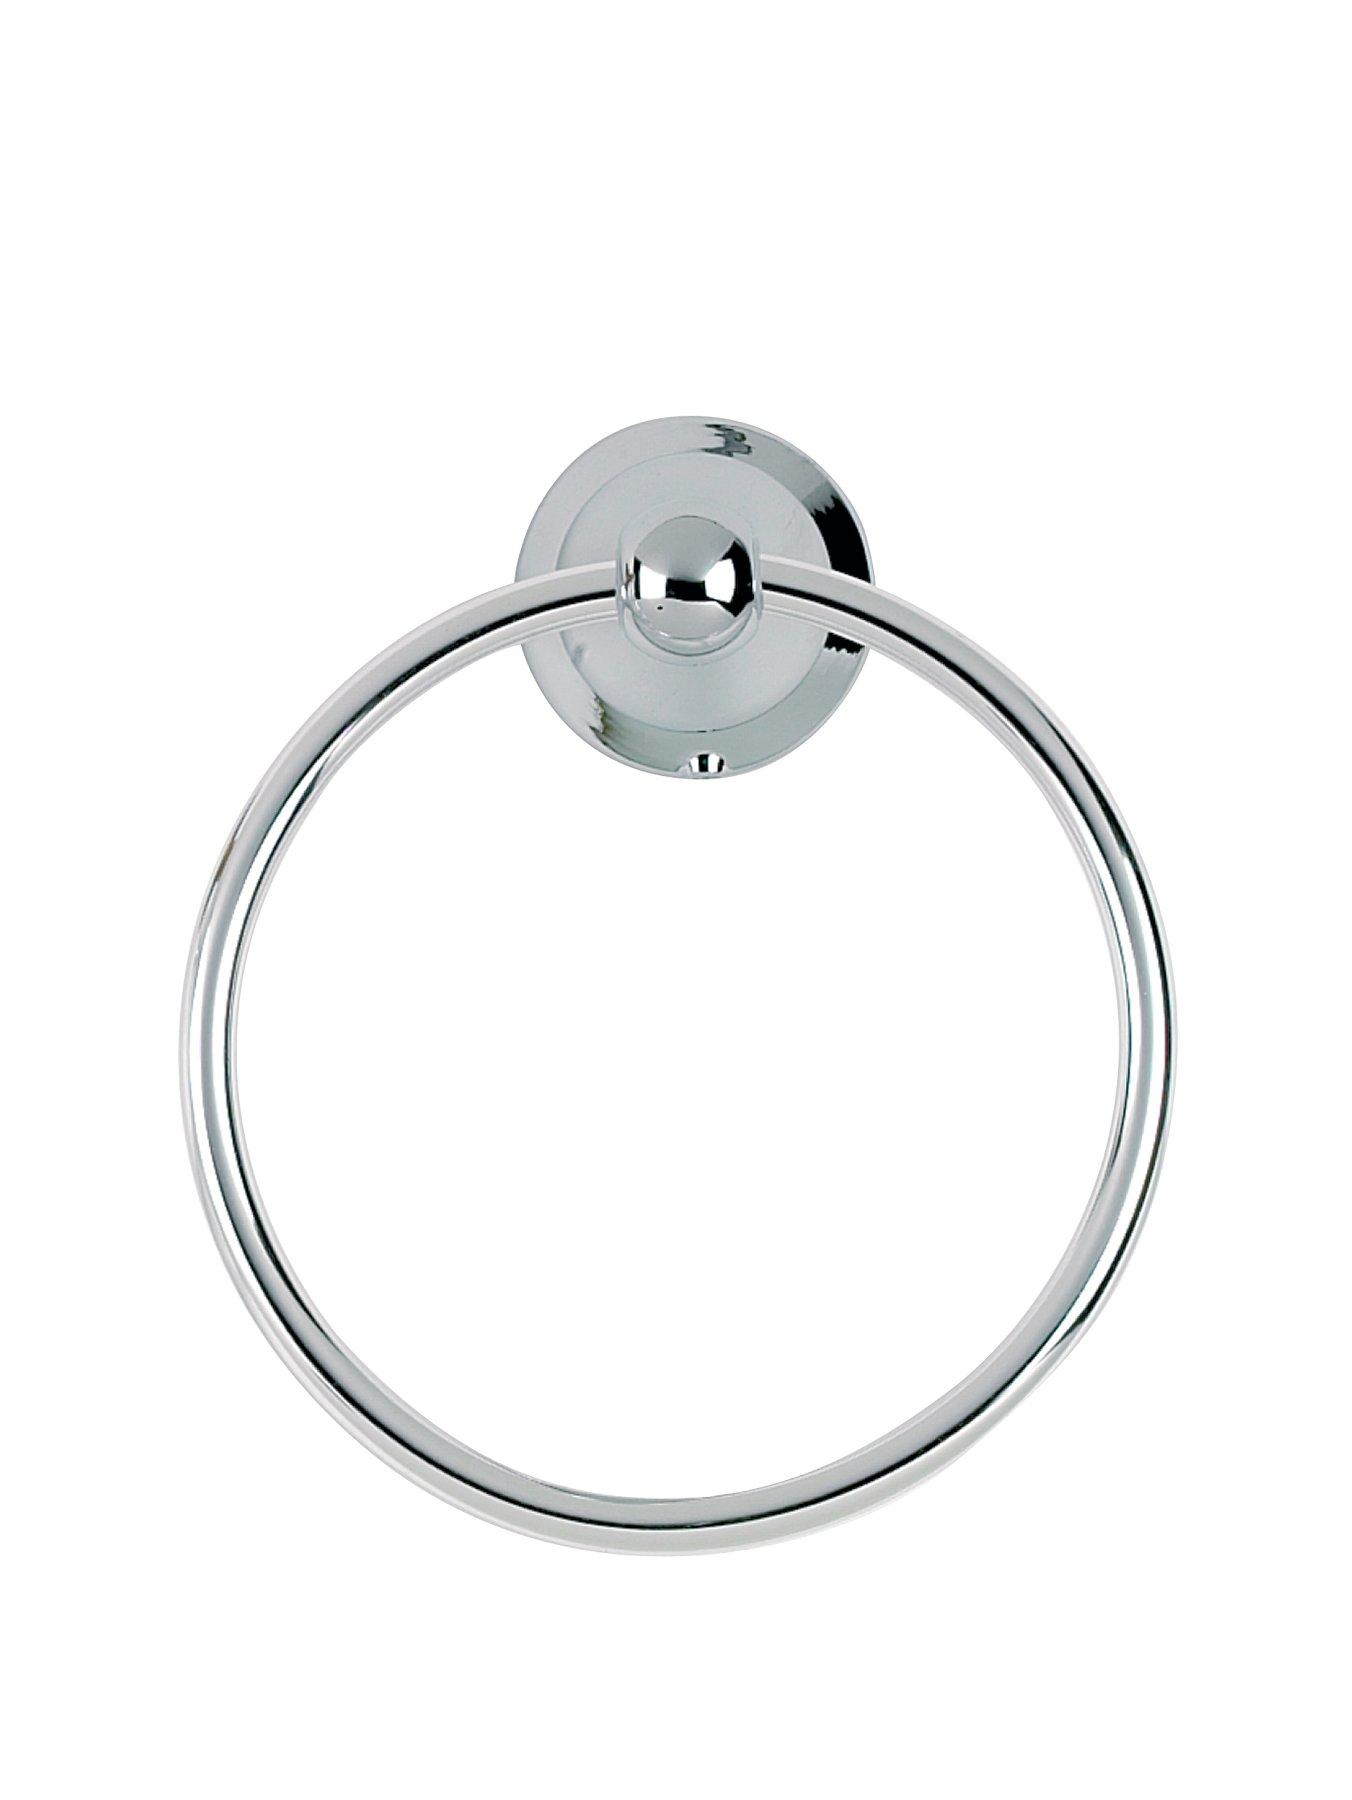 Sabichi Kingston Towel Ring